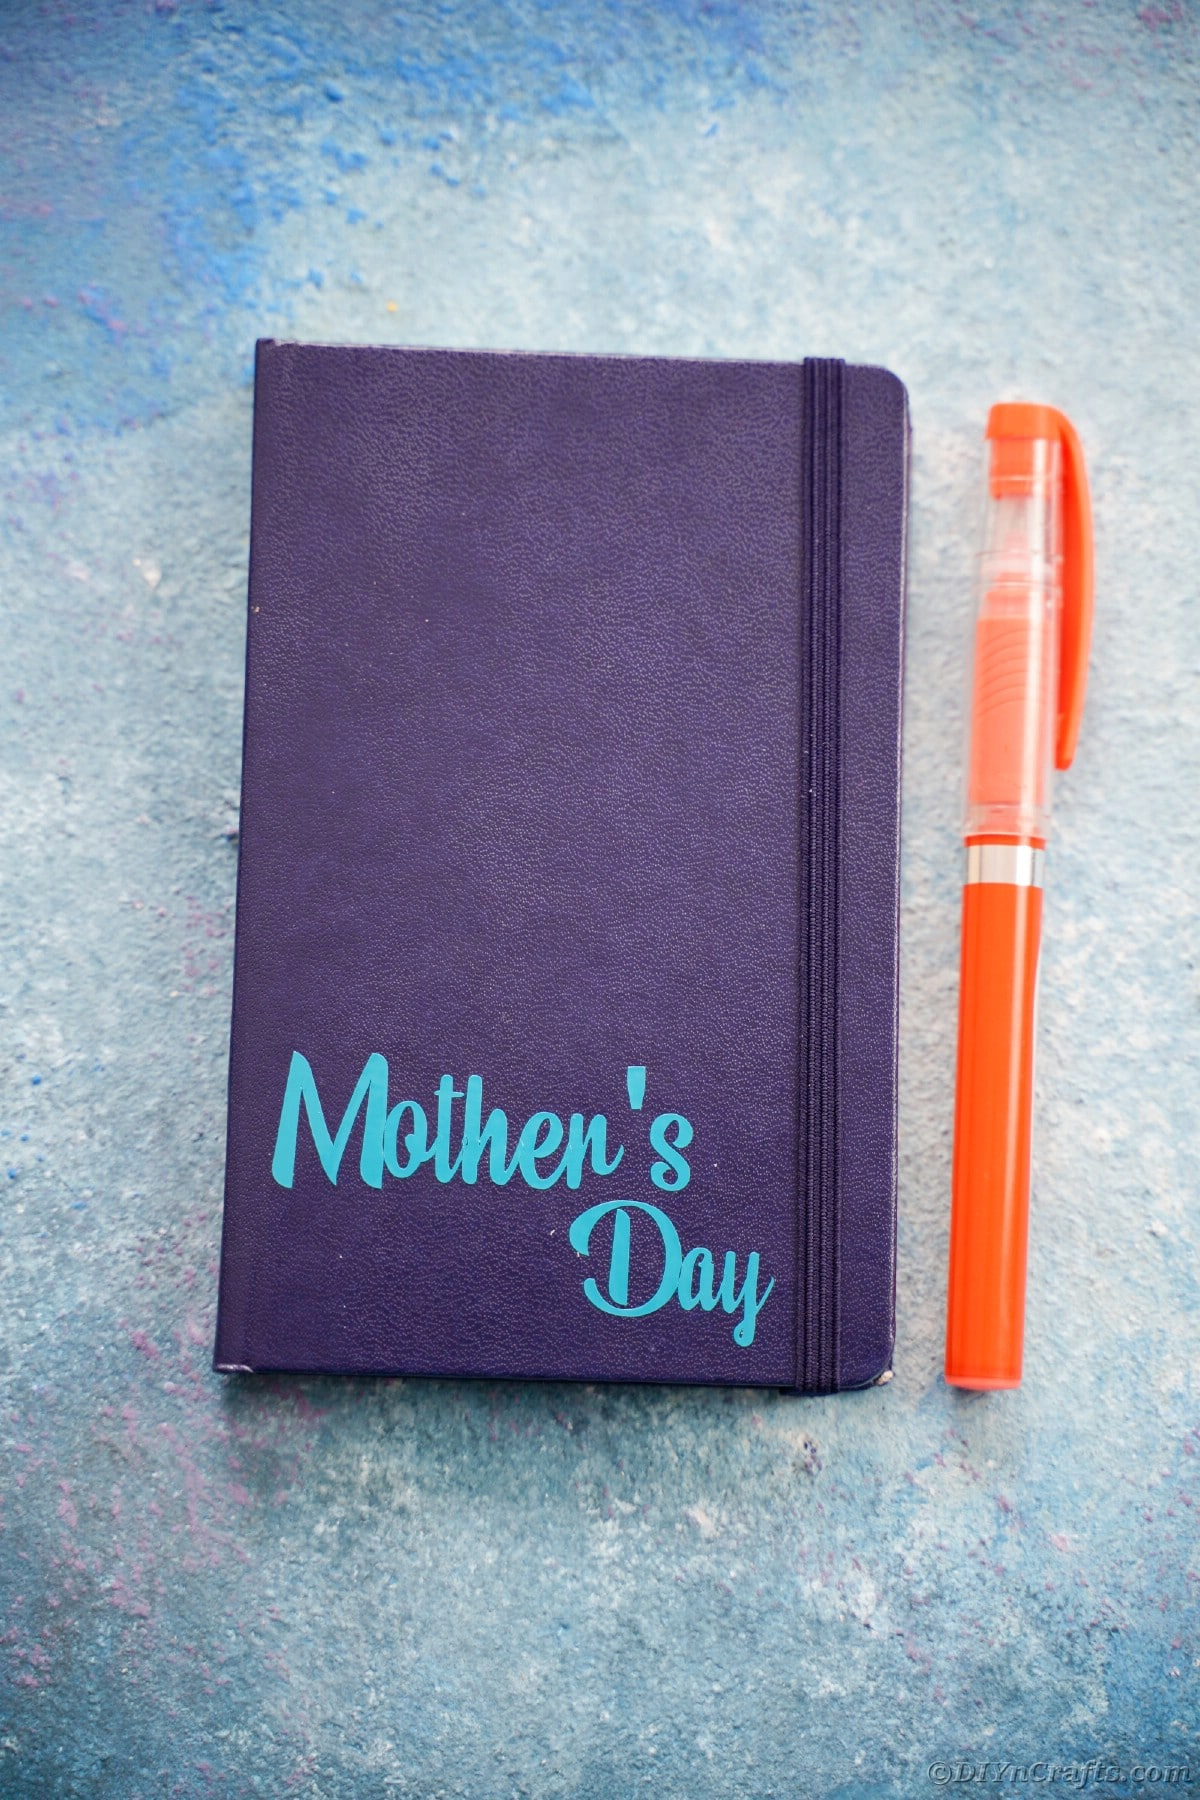 Dark blue journal with light blue mothers day printed on bottom corner next to orange pen